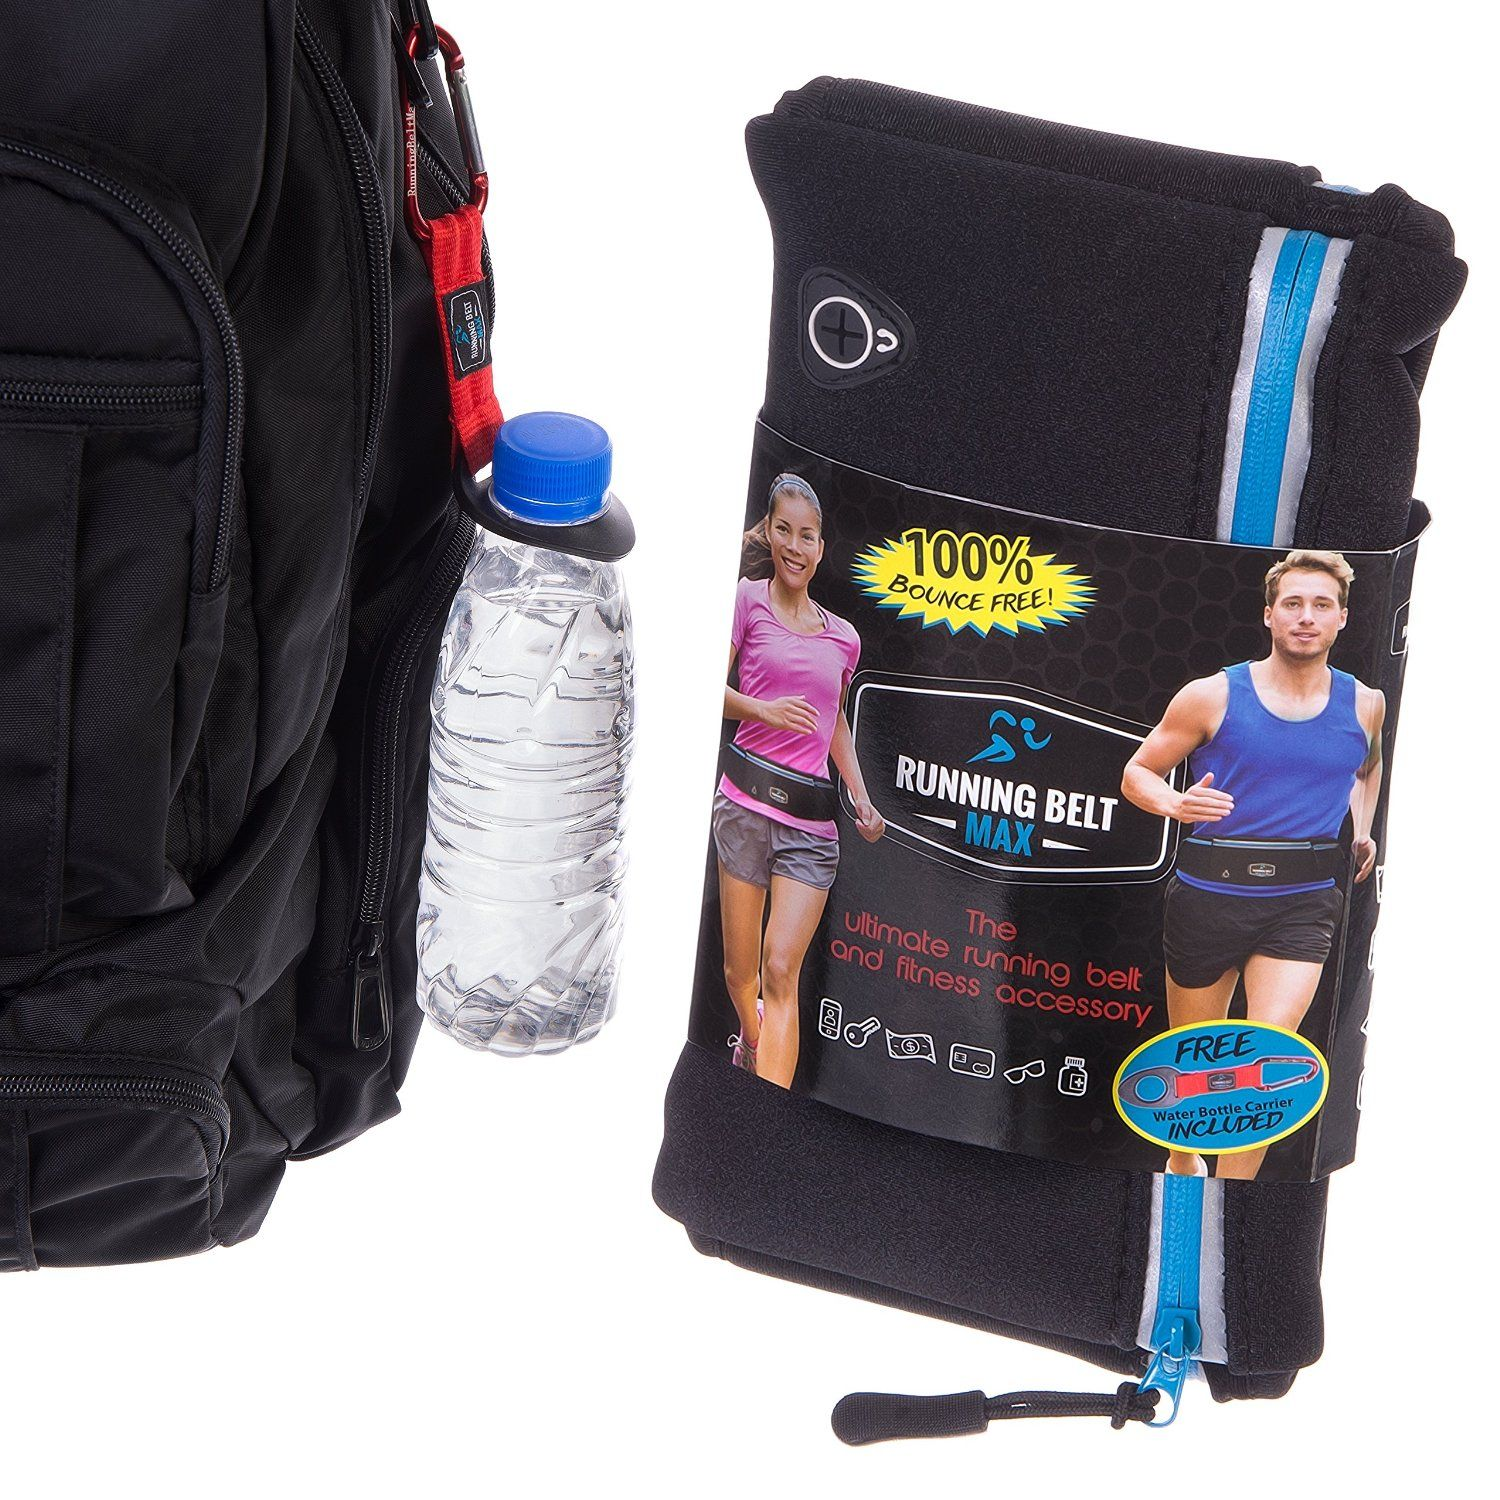 Amazon.com : Running Belt Max - For Women & Men - Fits iPhone 6 Plus and Android Phones - Waterproof Lycra - Reflective Zippers, Earphone Hole & Key Holder - FREE Bottle Holder & FREE eBook - Lifetime Guarantee! : Sports & Outdoors